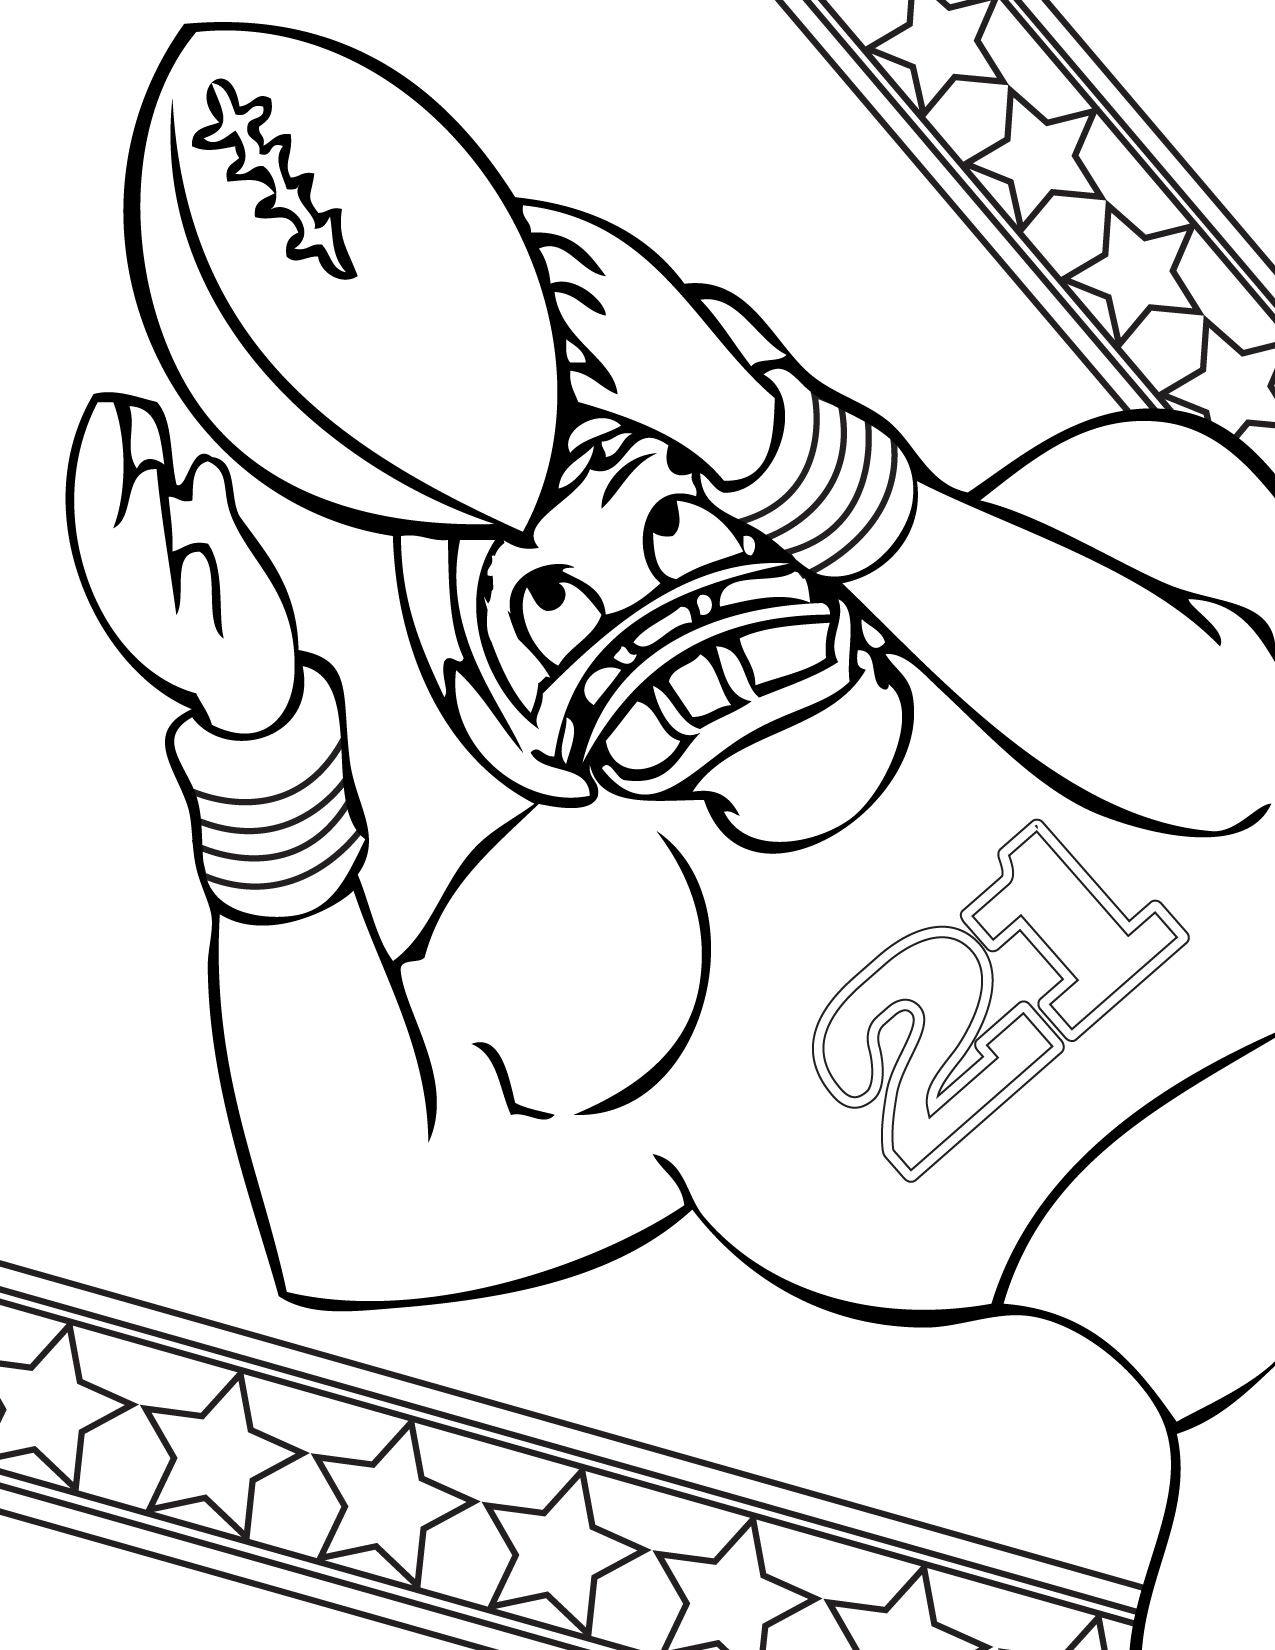 sports coloring pages coloring pages football - Sports Coloring Pages